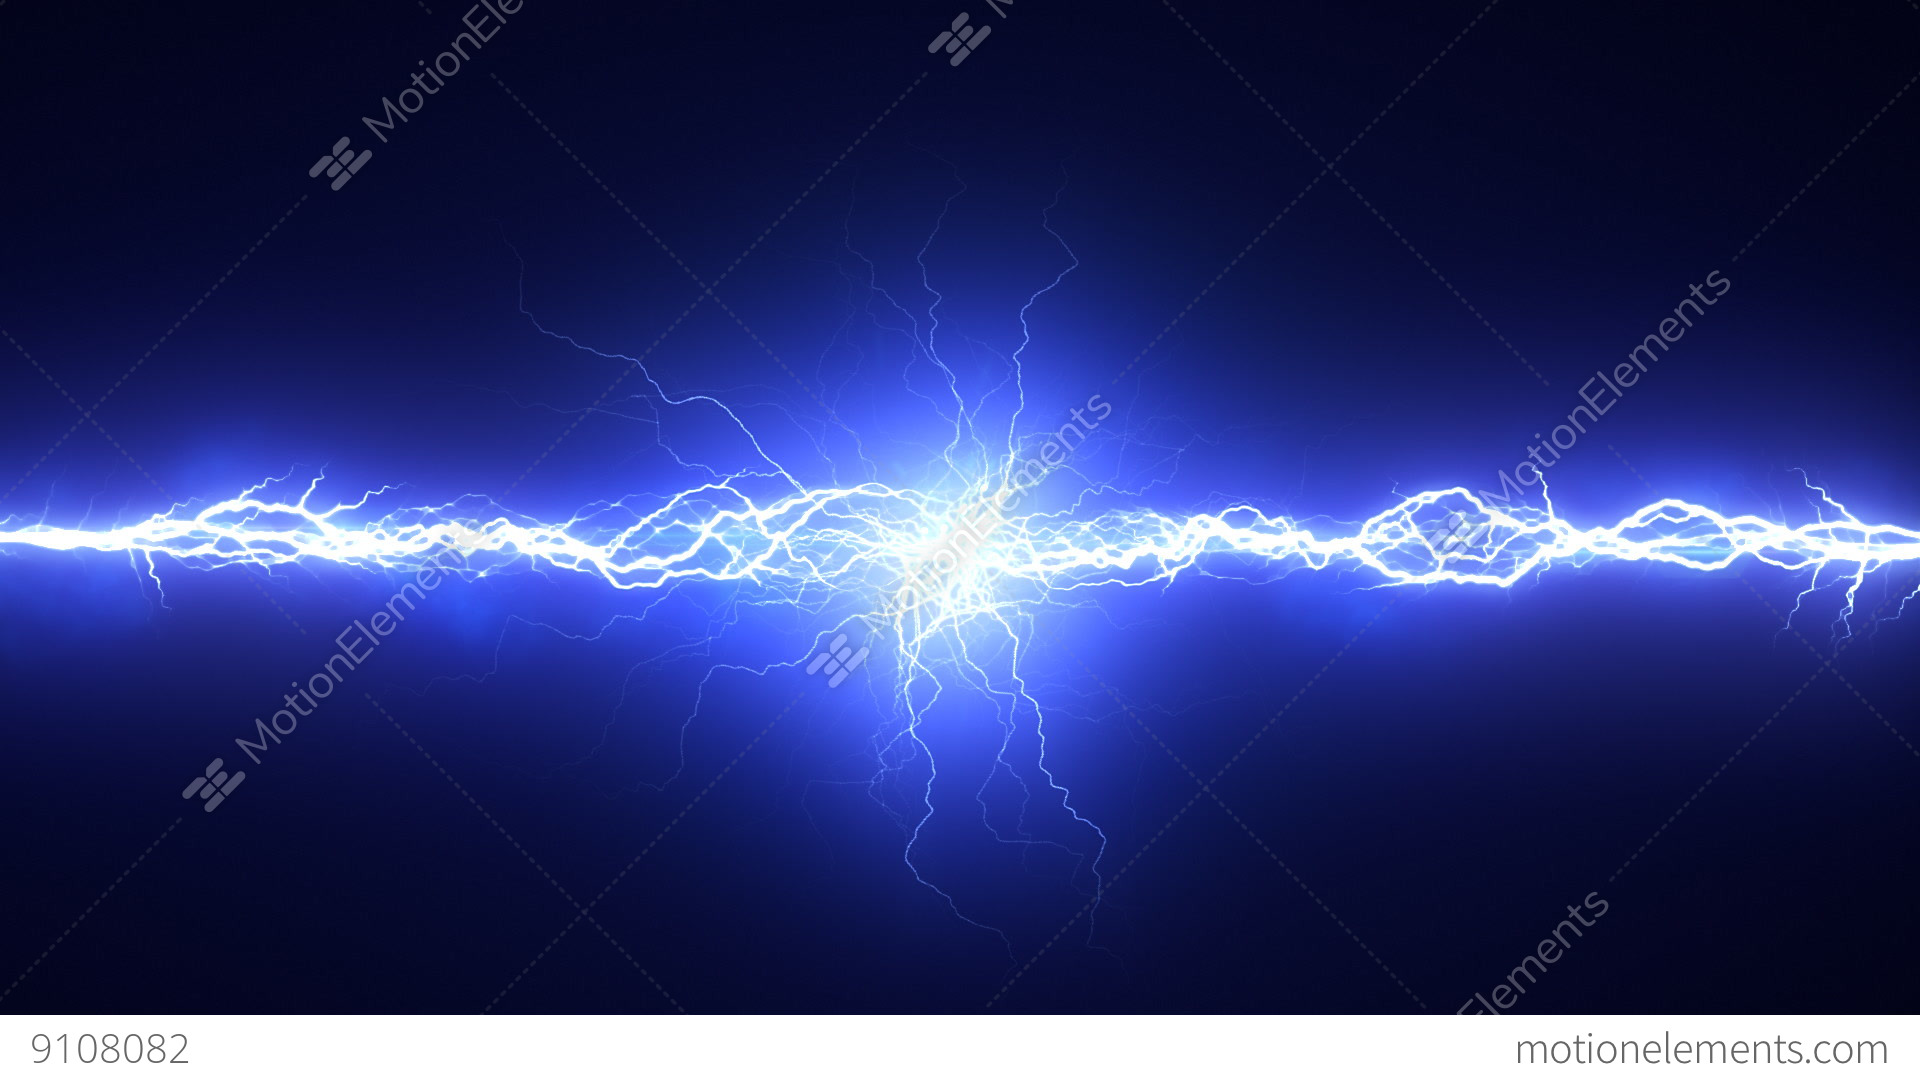 Electrical Spark Element Stock video footage | 9108082